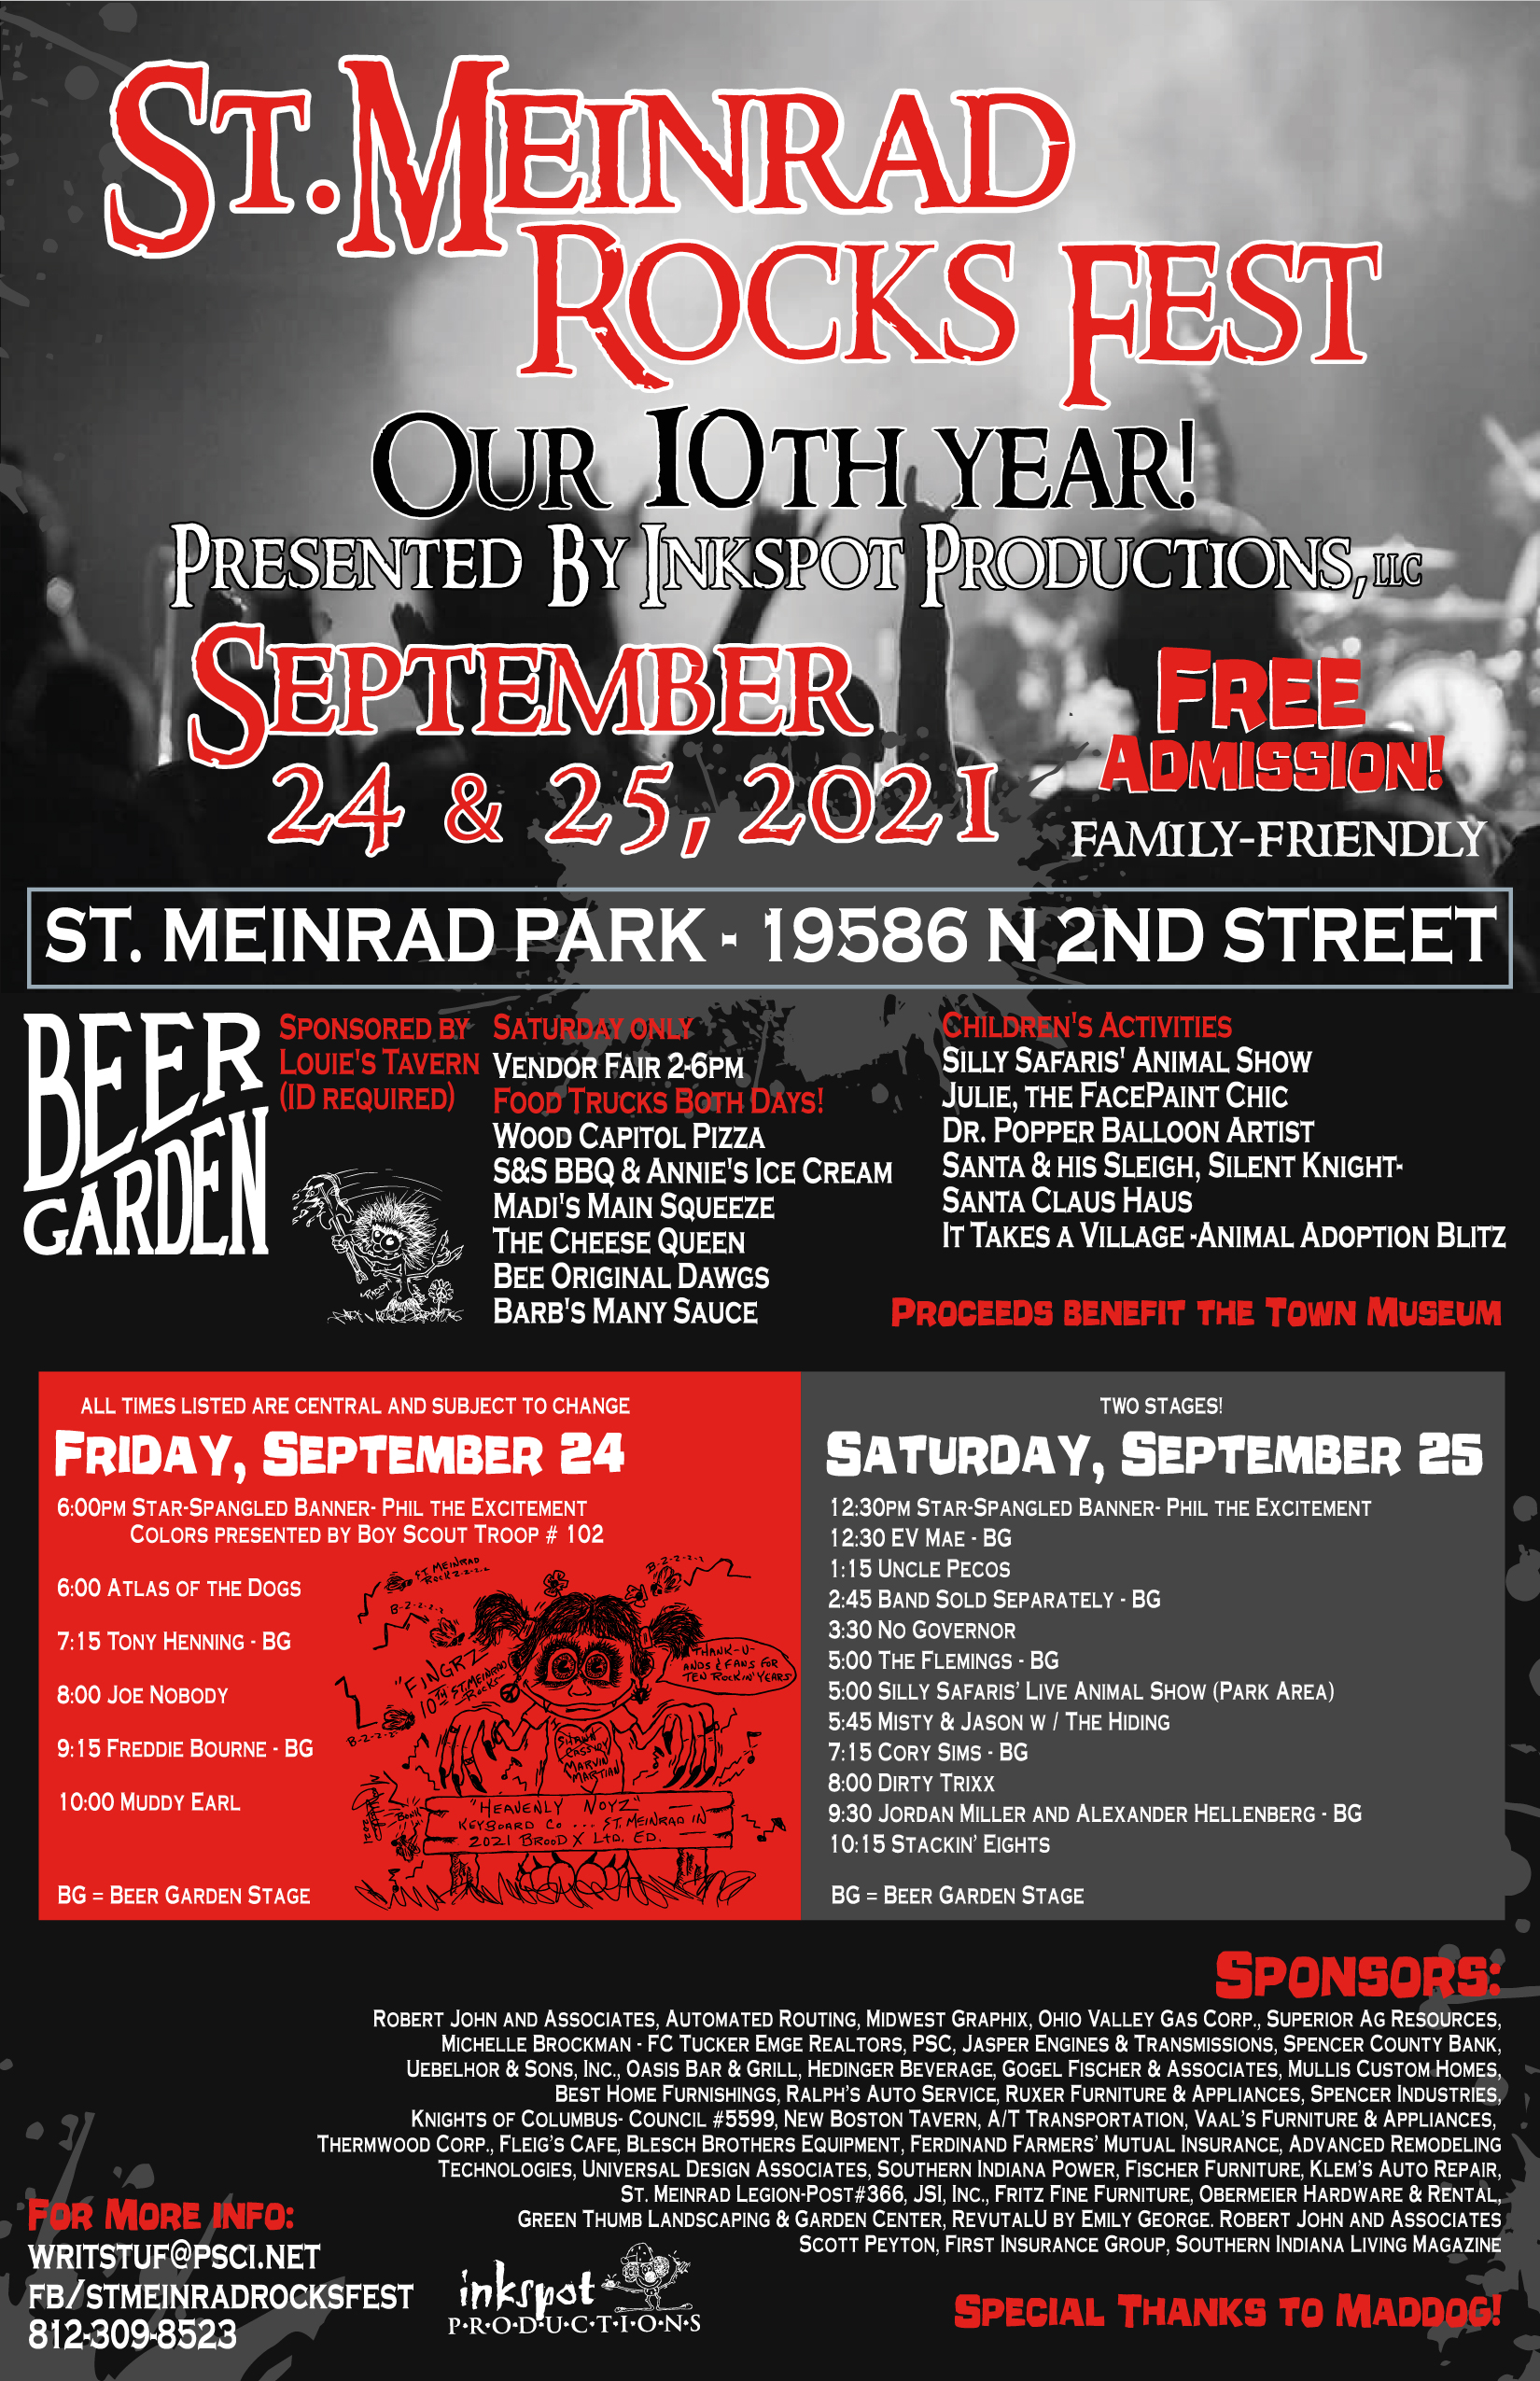 10th Annual St. Meinrad Rocks Fest to Offer Free Admission